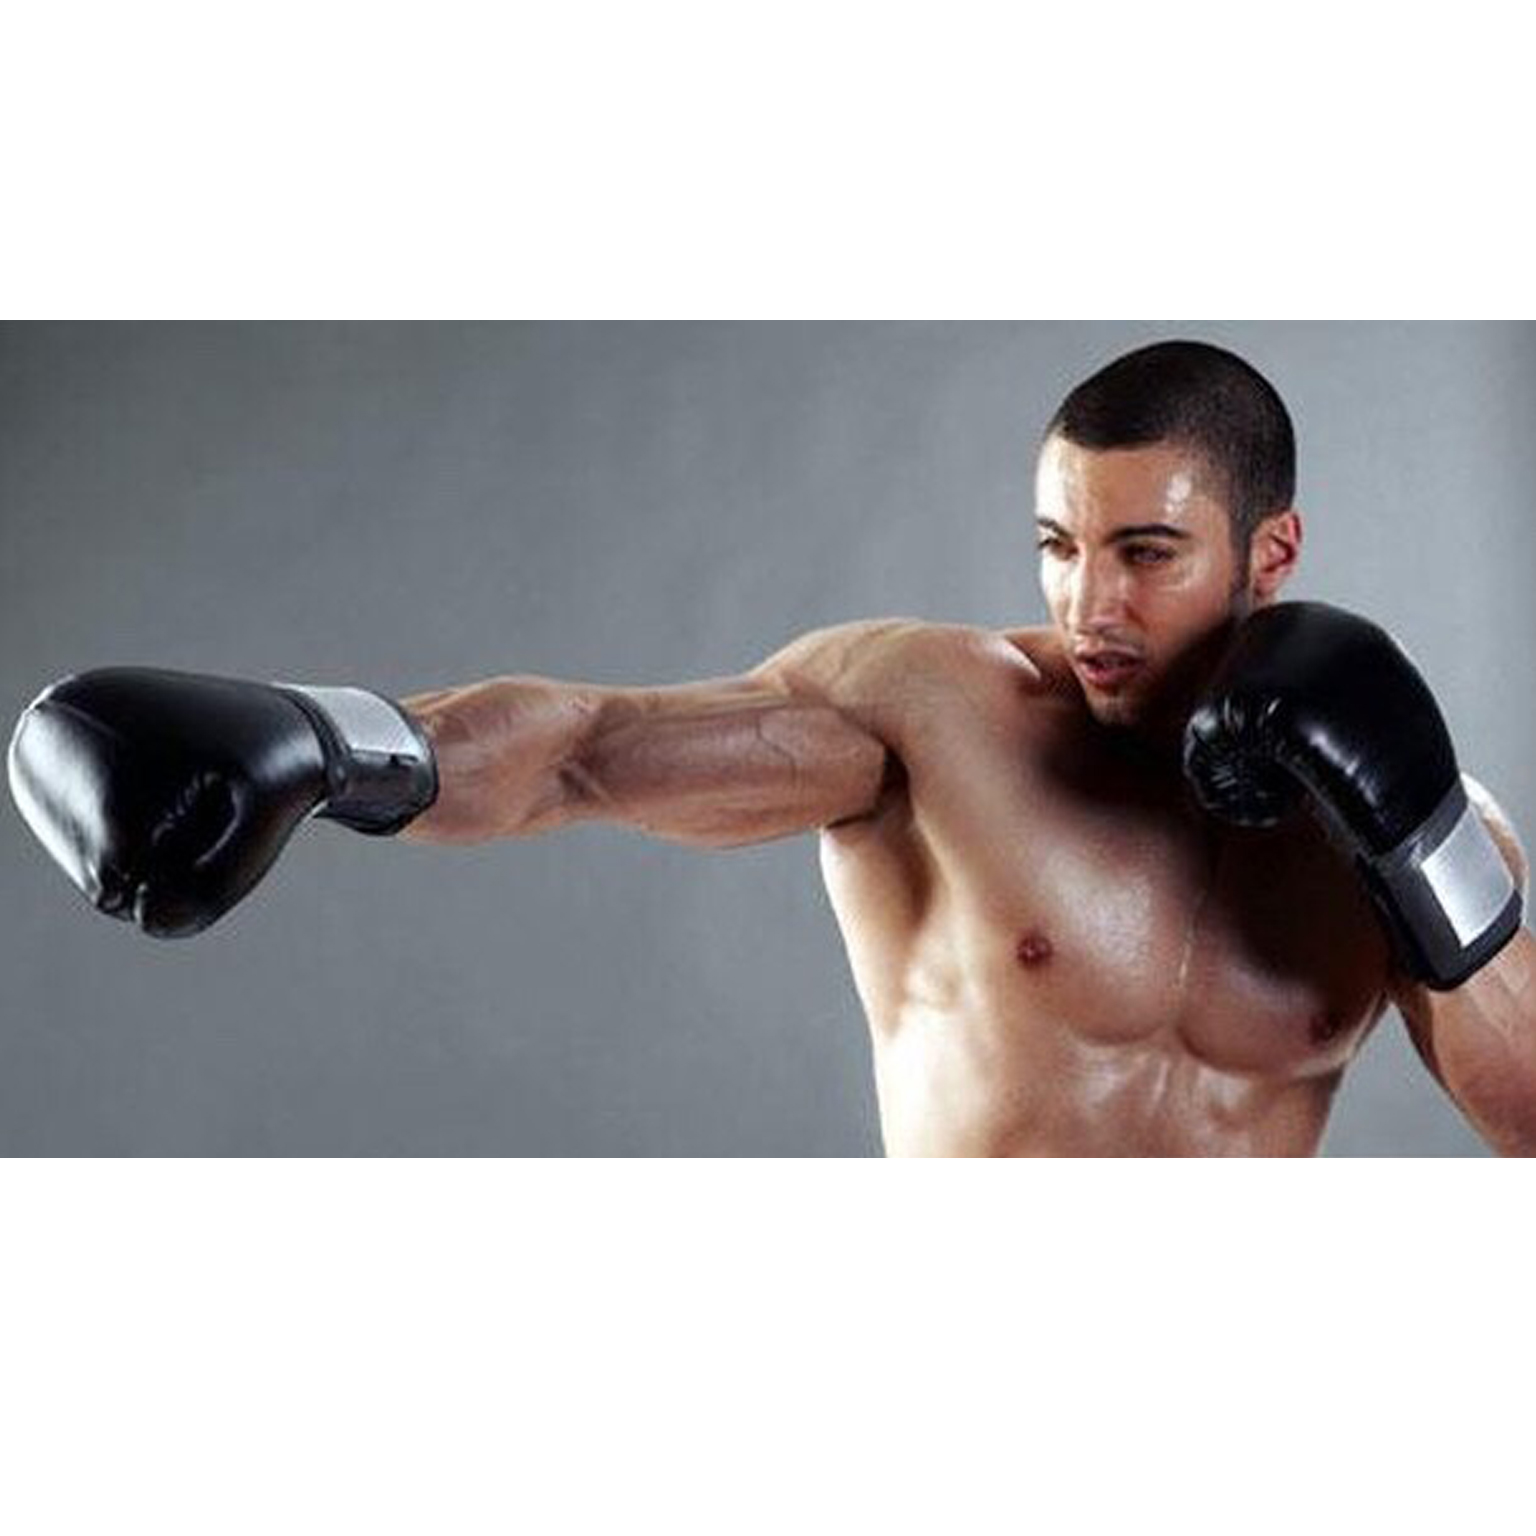 Toronto-Fitness-Model-Agency-Boxing-Lifestyle-Kevin-Zammit